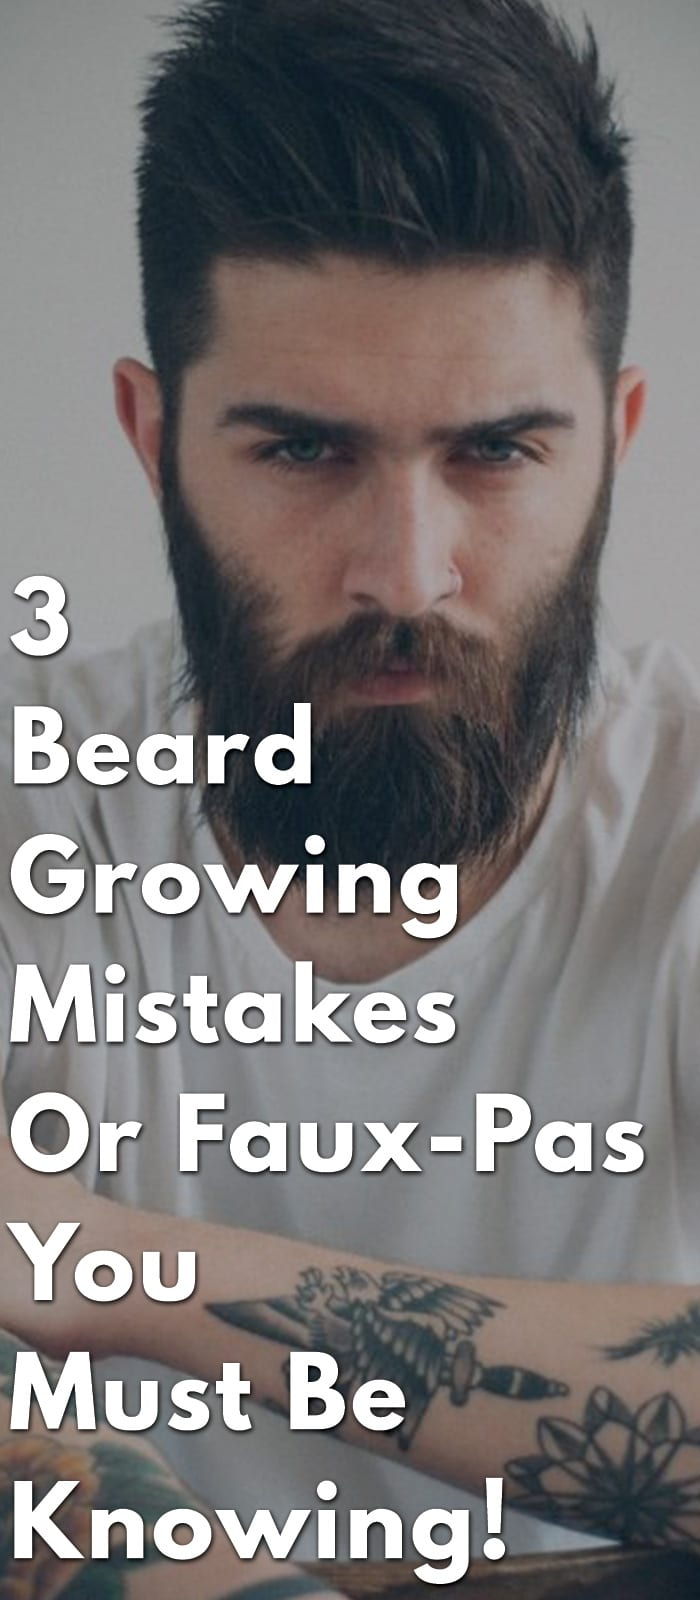 3-Beard-Growing-Mistakes-Or-Faux-Pas-You-Must-Be-Knowing!.